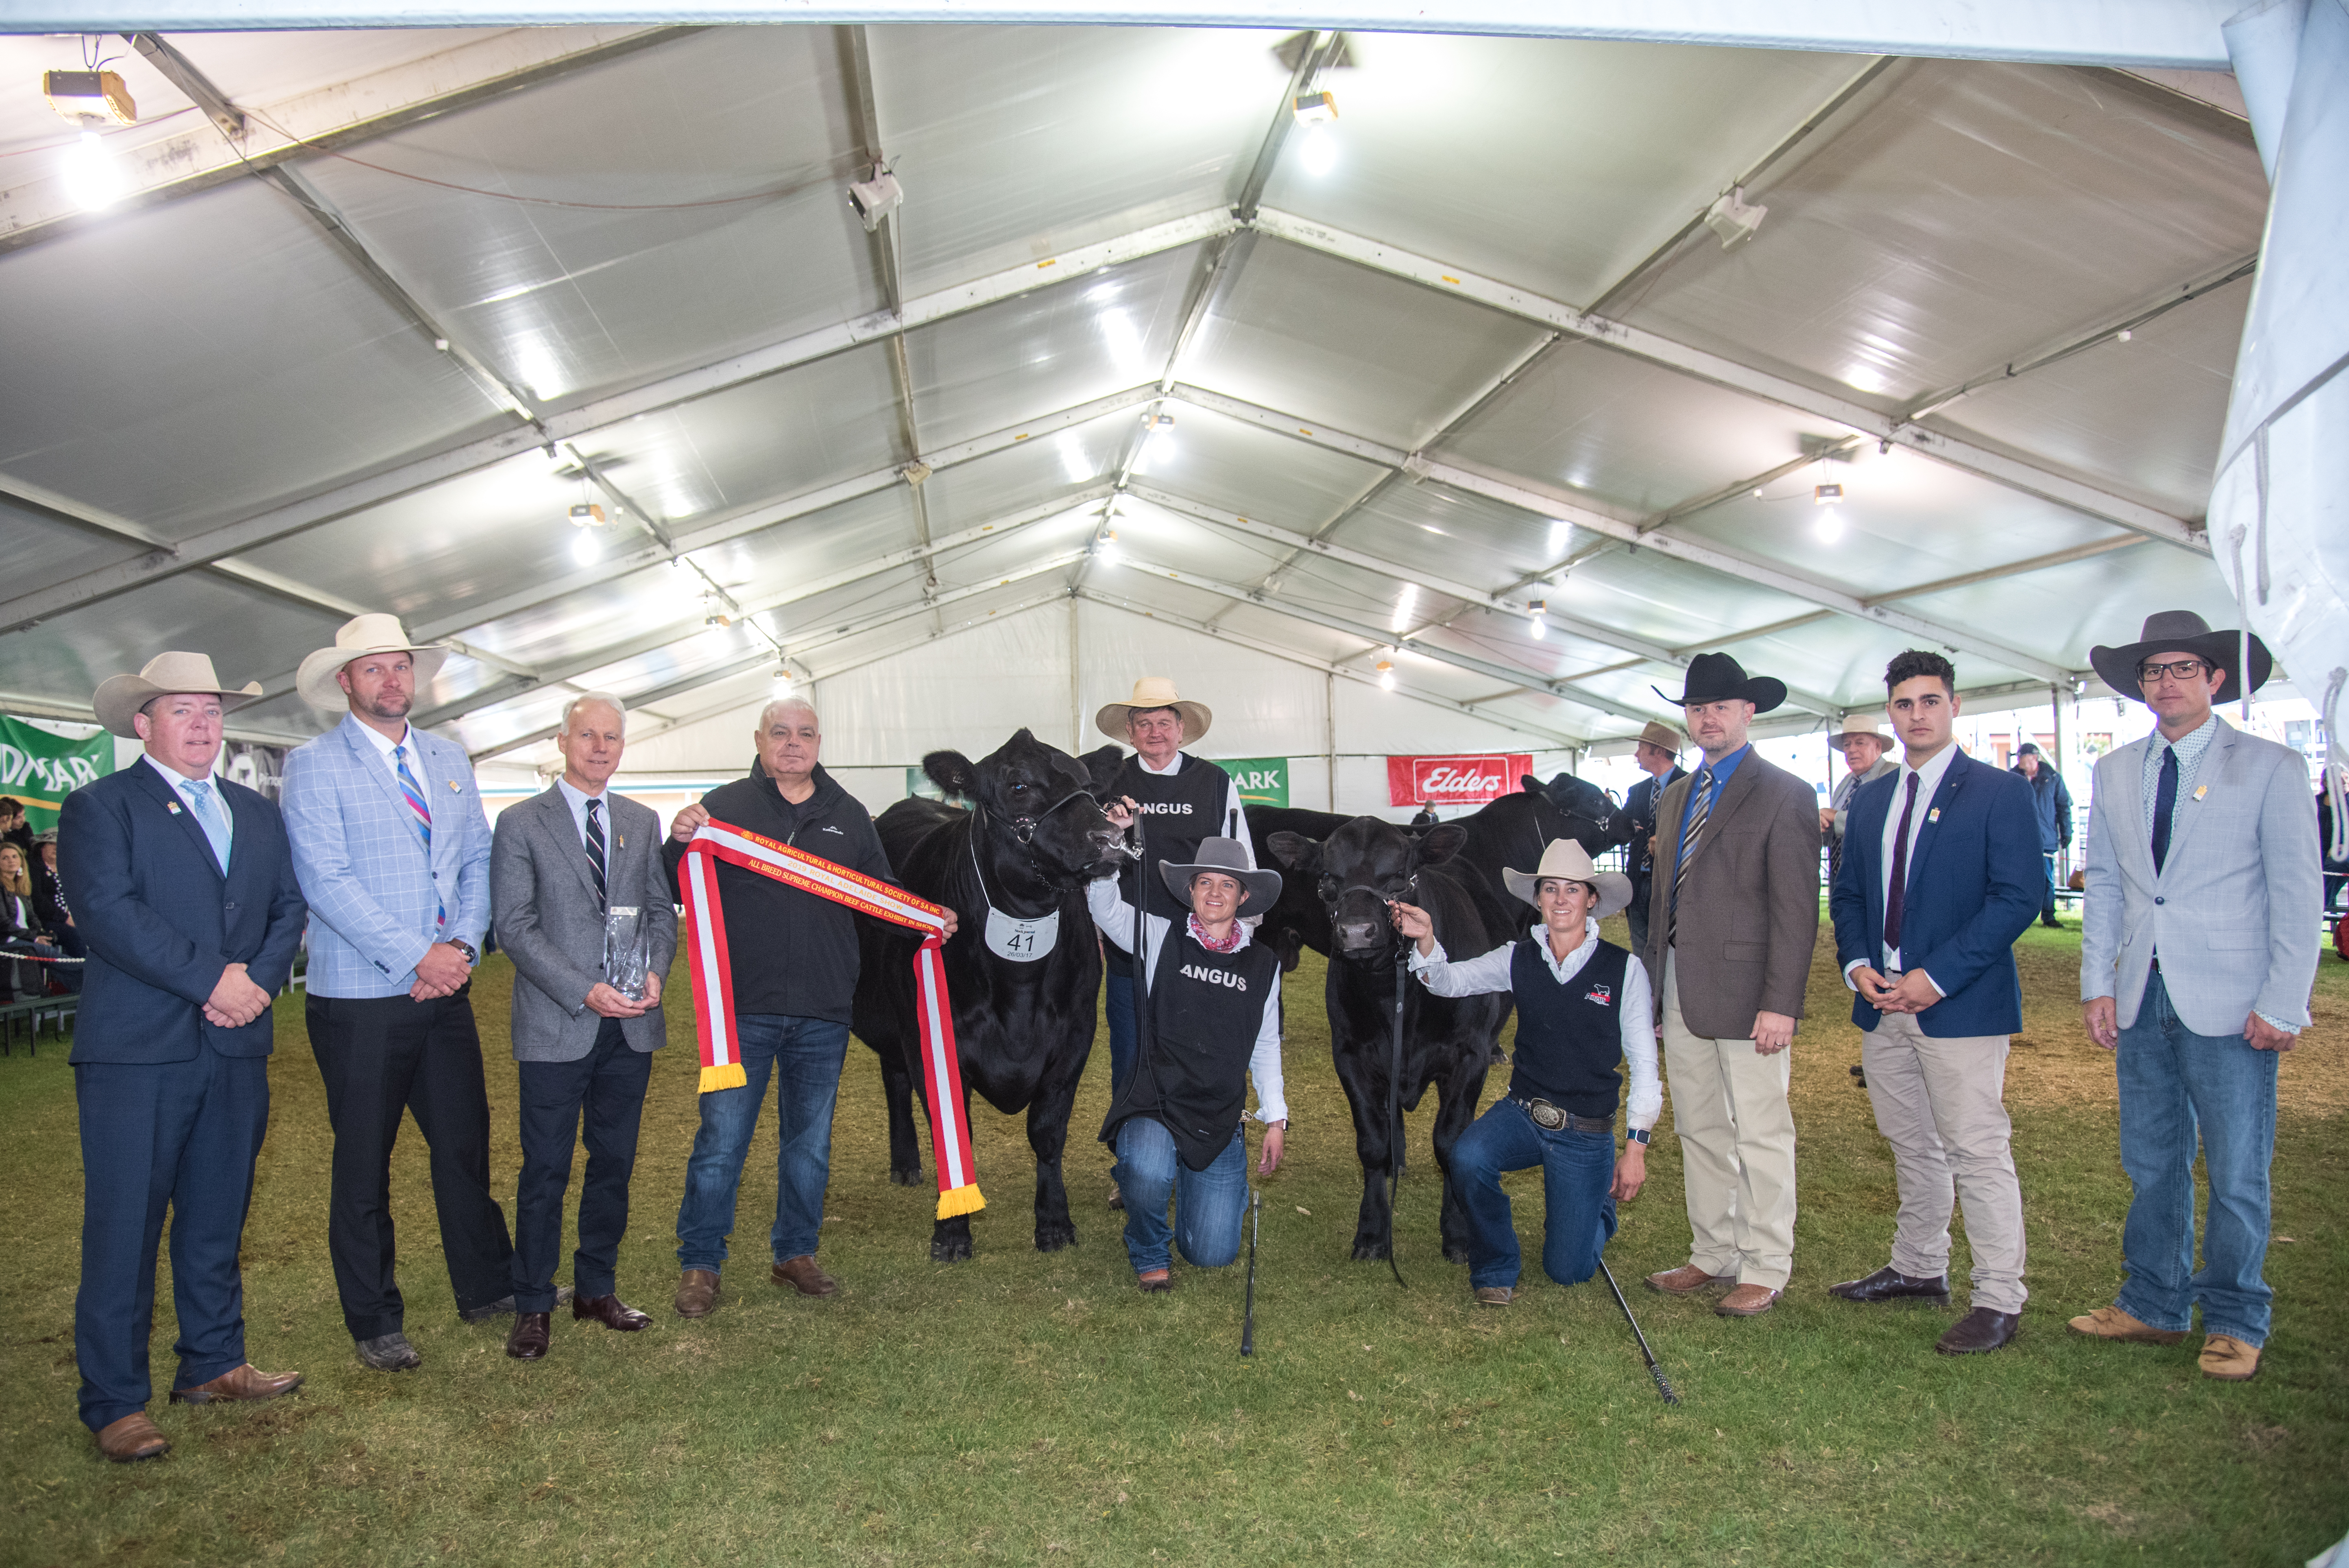 All Breed Supreme Champion Beef Cattle Exhibit in Show